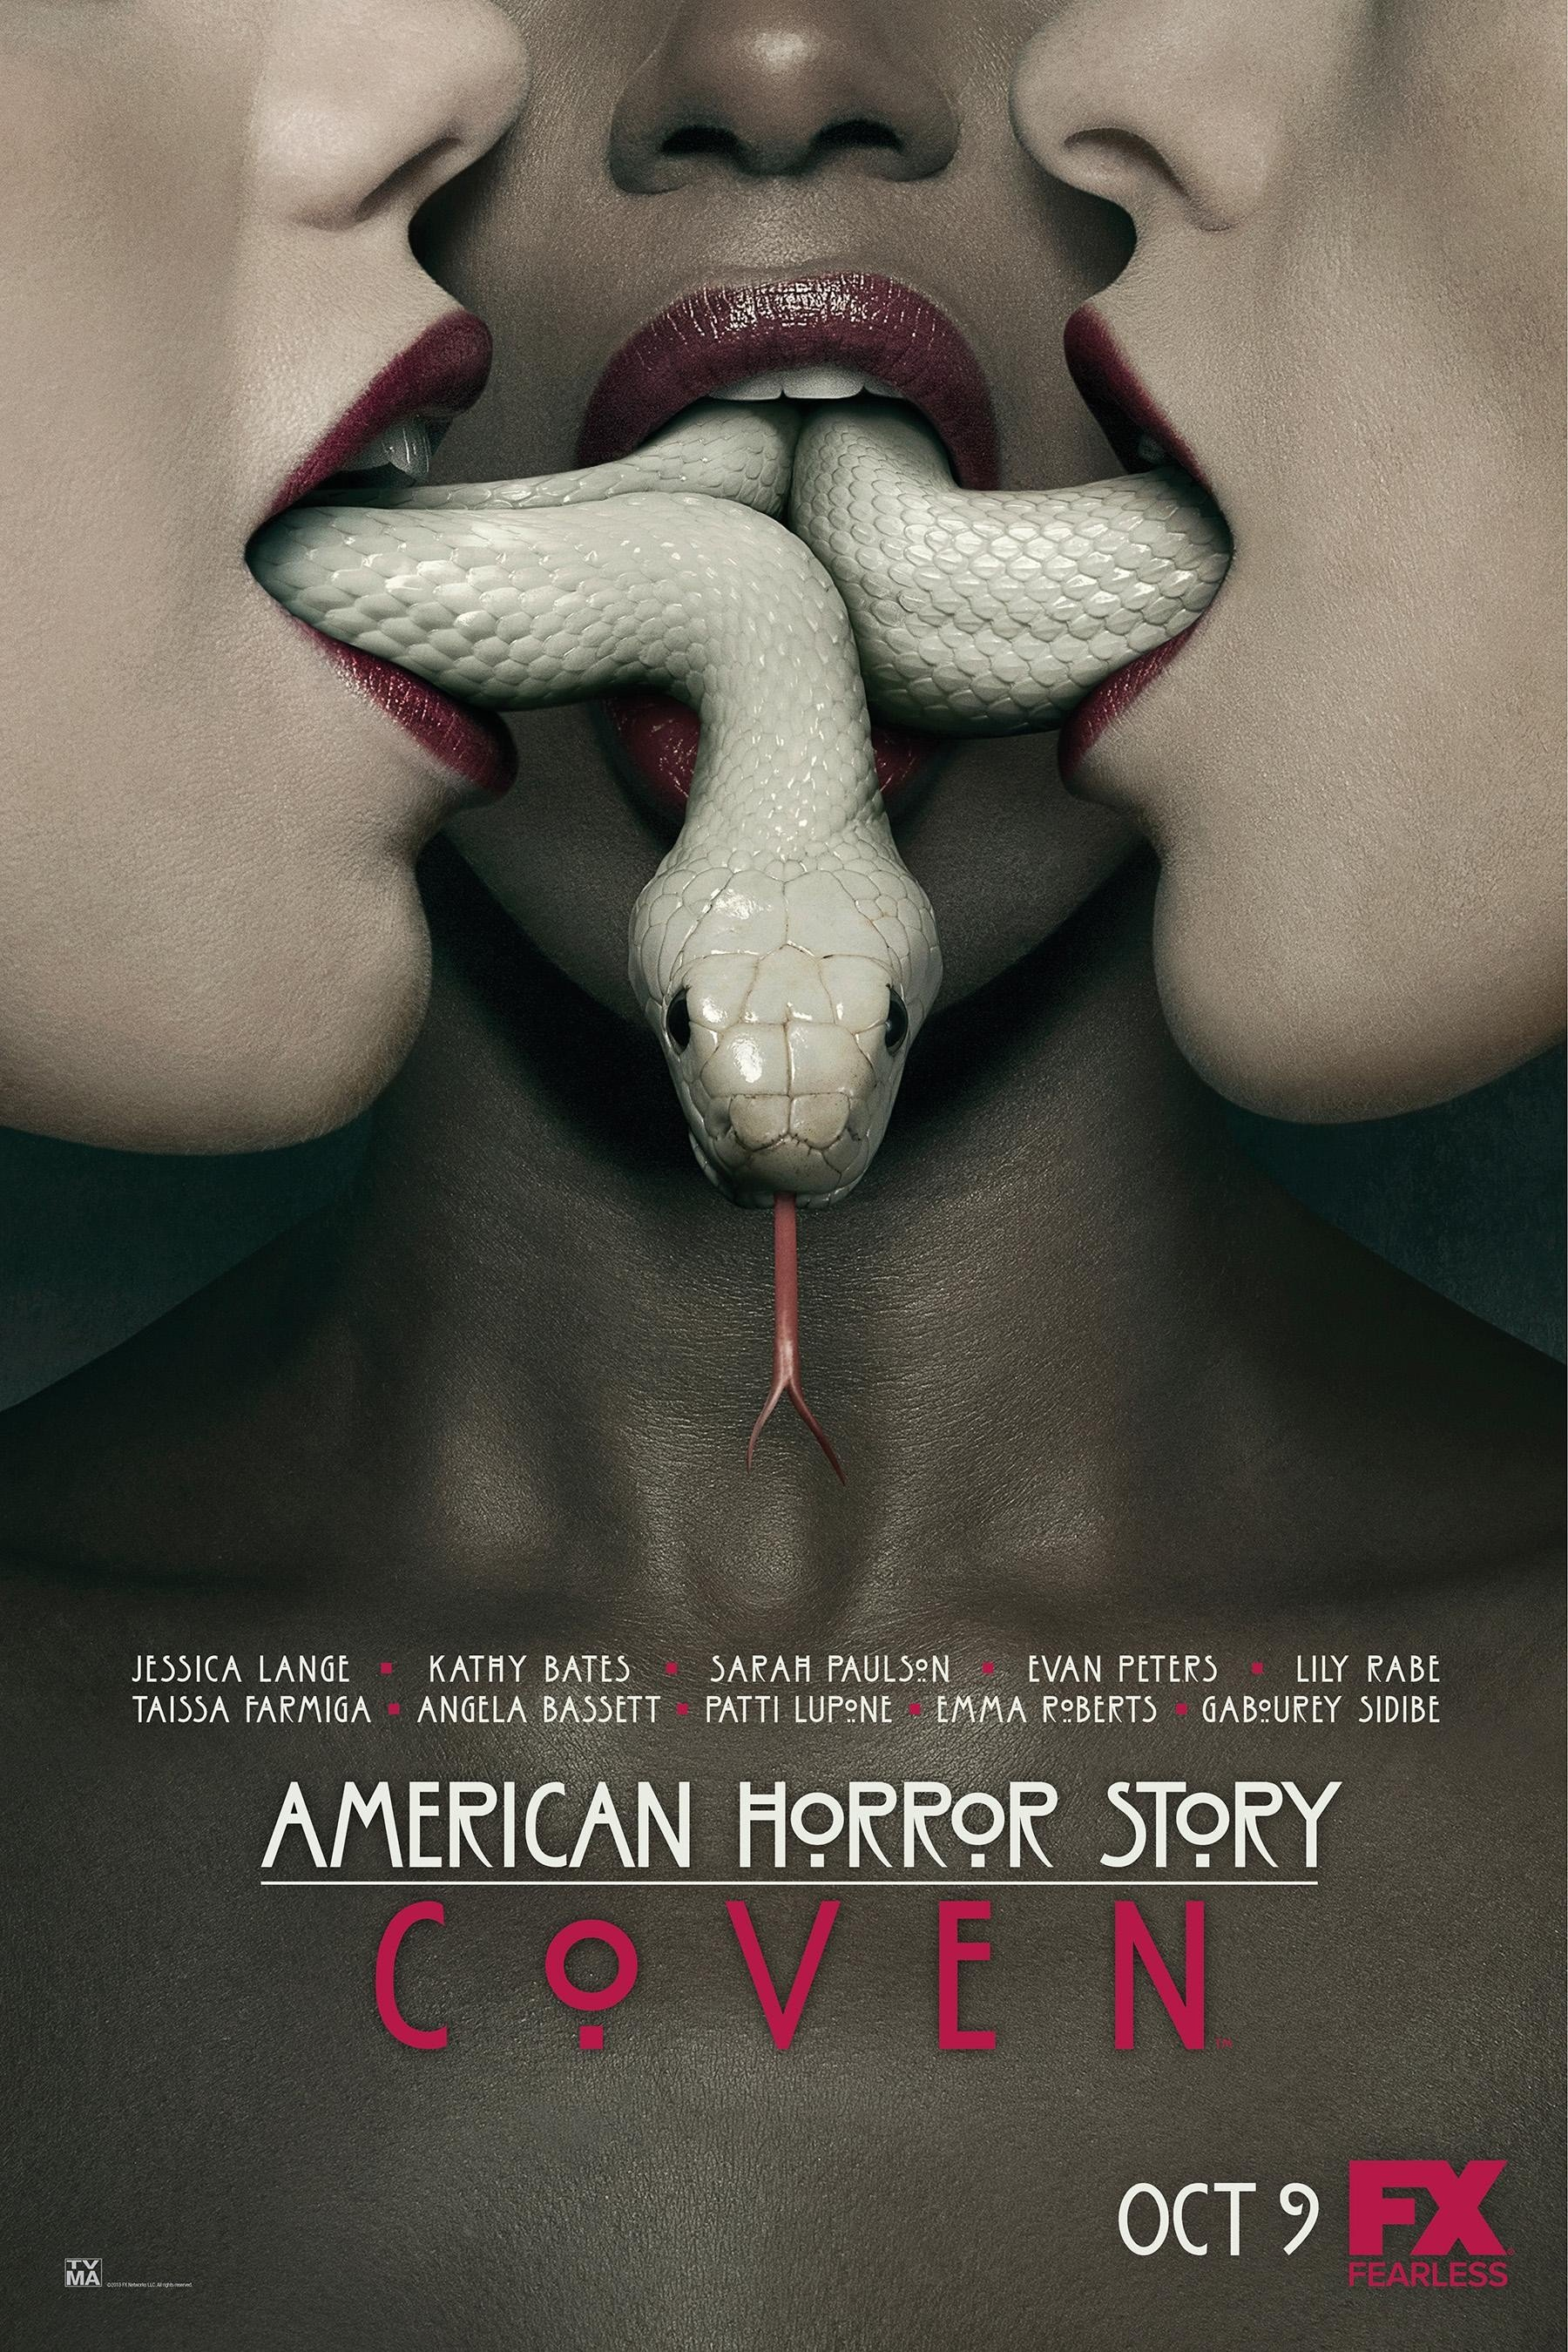 American Horror Story: Coven Season 3 美国恐怖故事 第三季